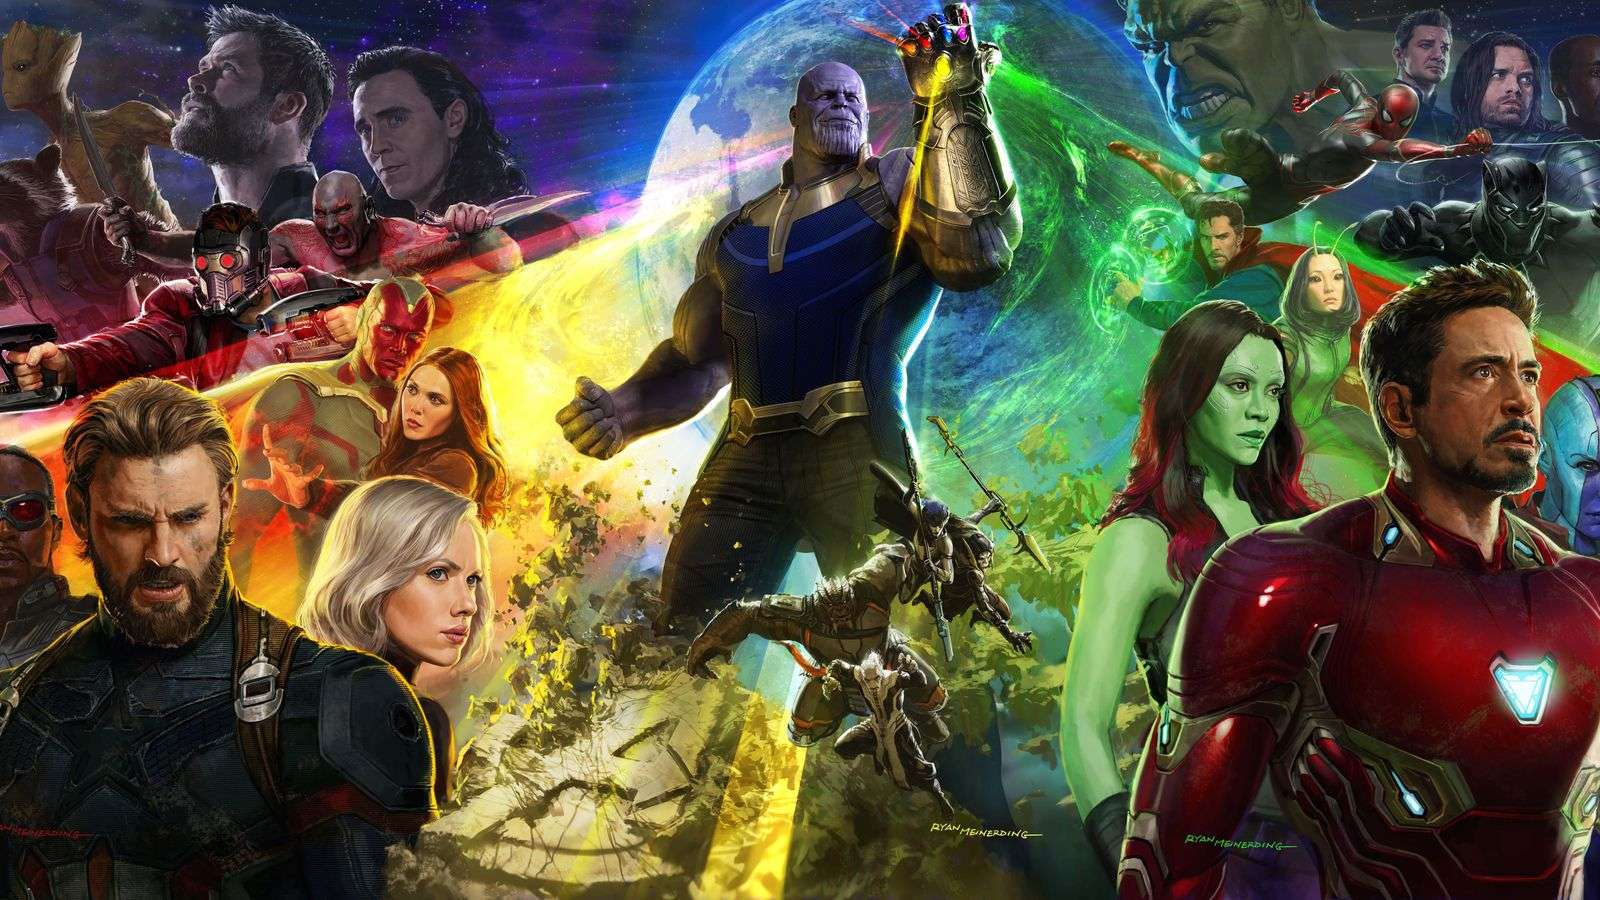 Avengers: Infinity War – What Can We Expect?